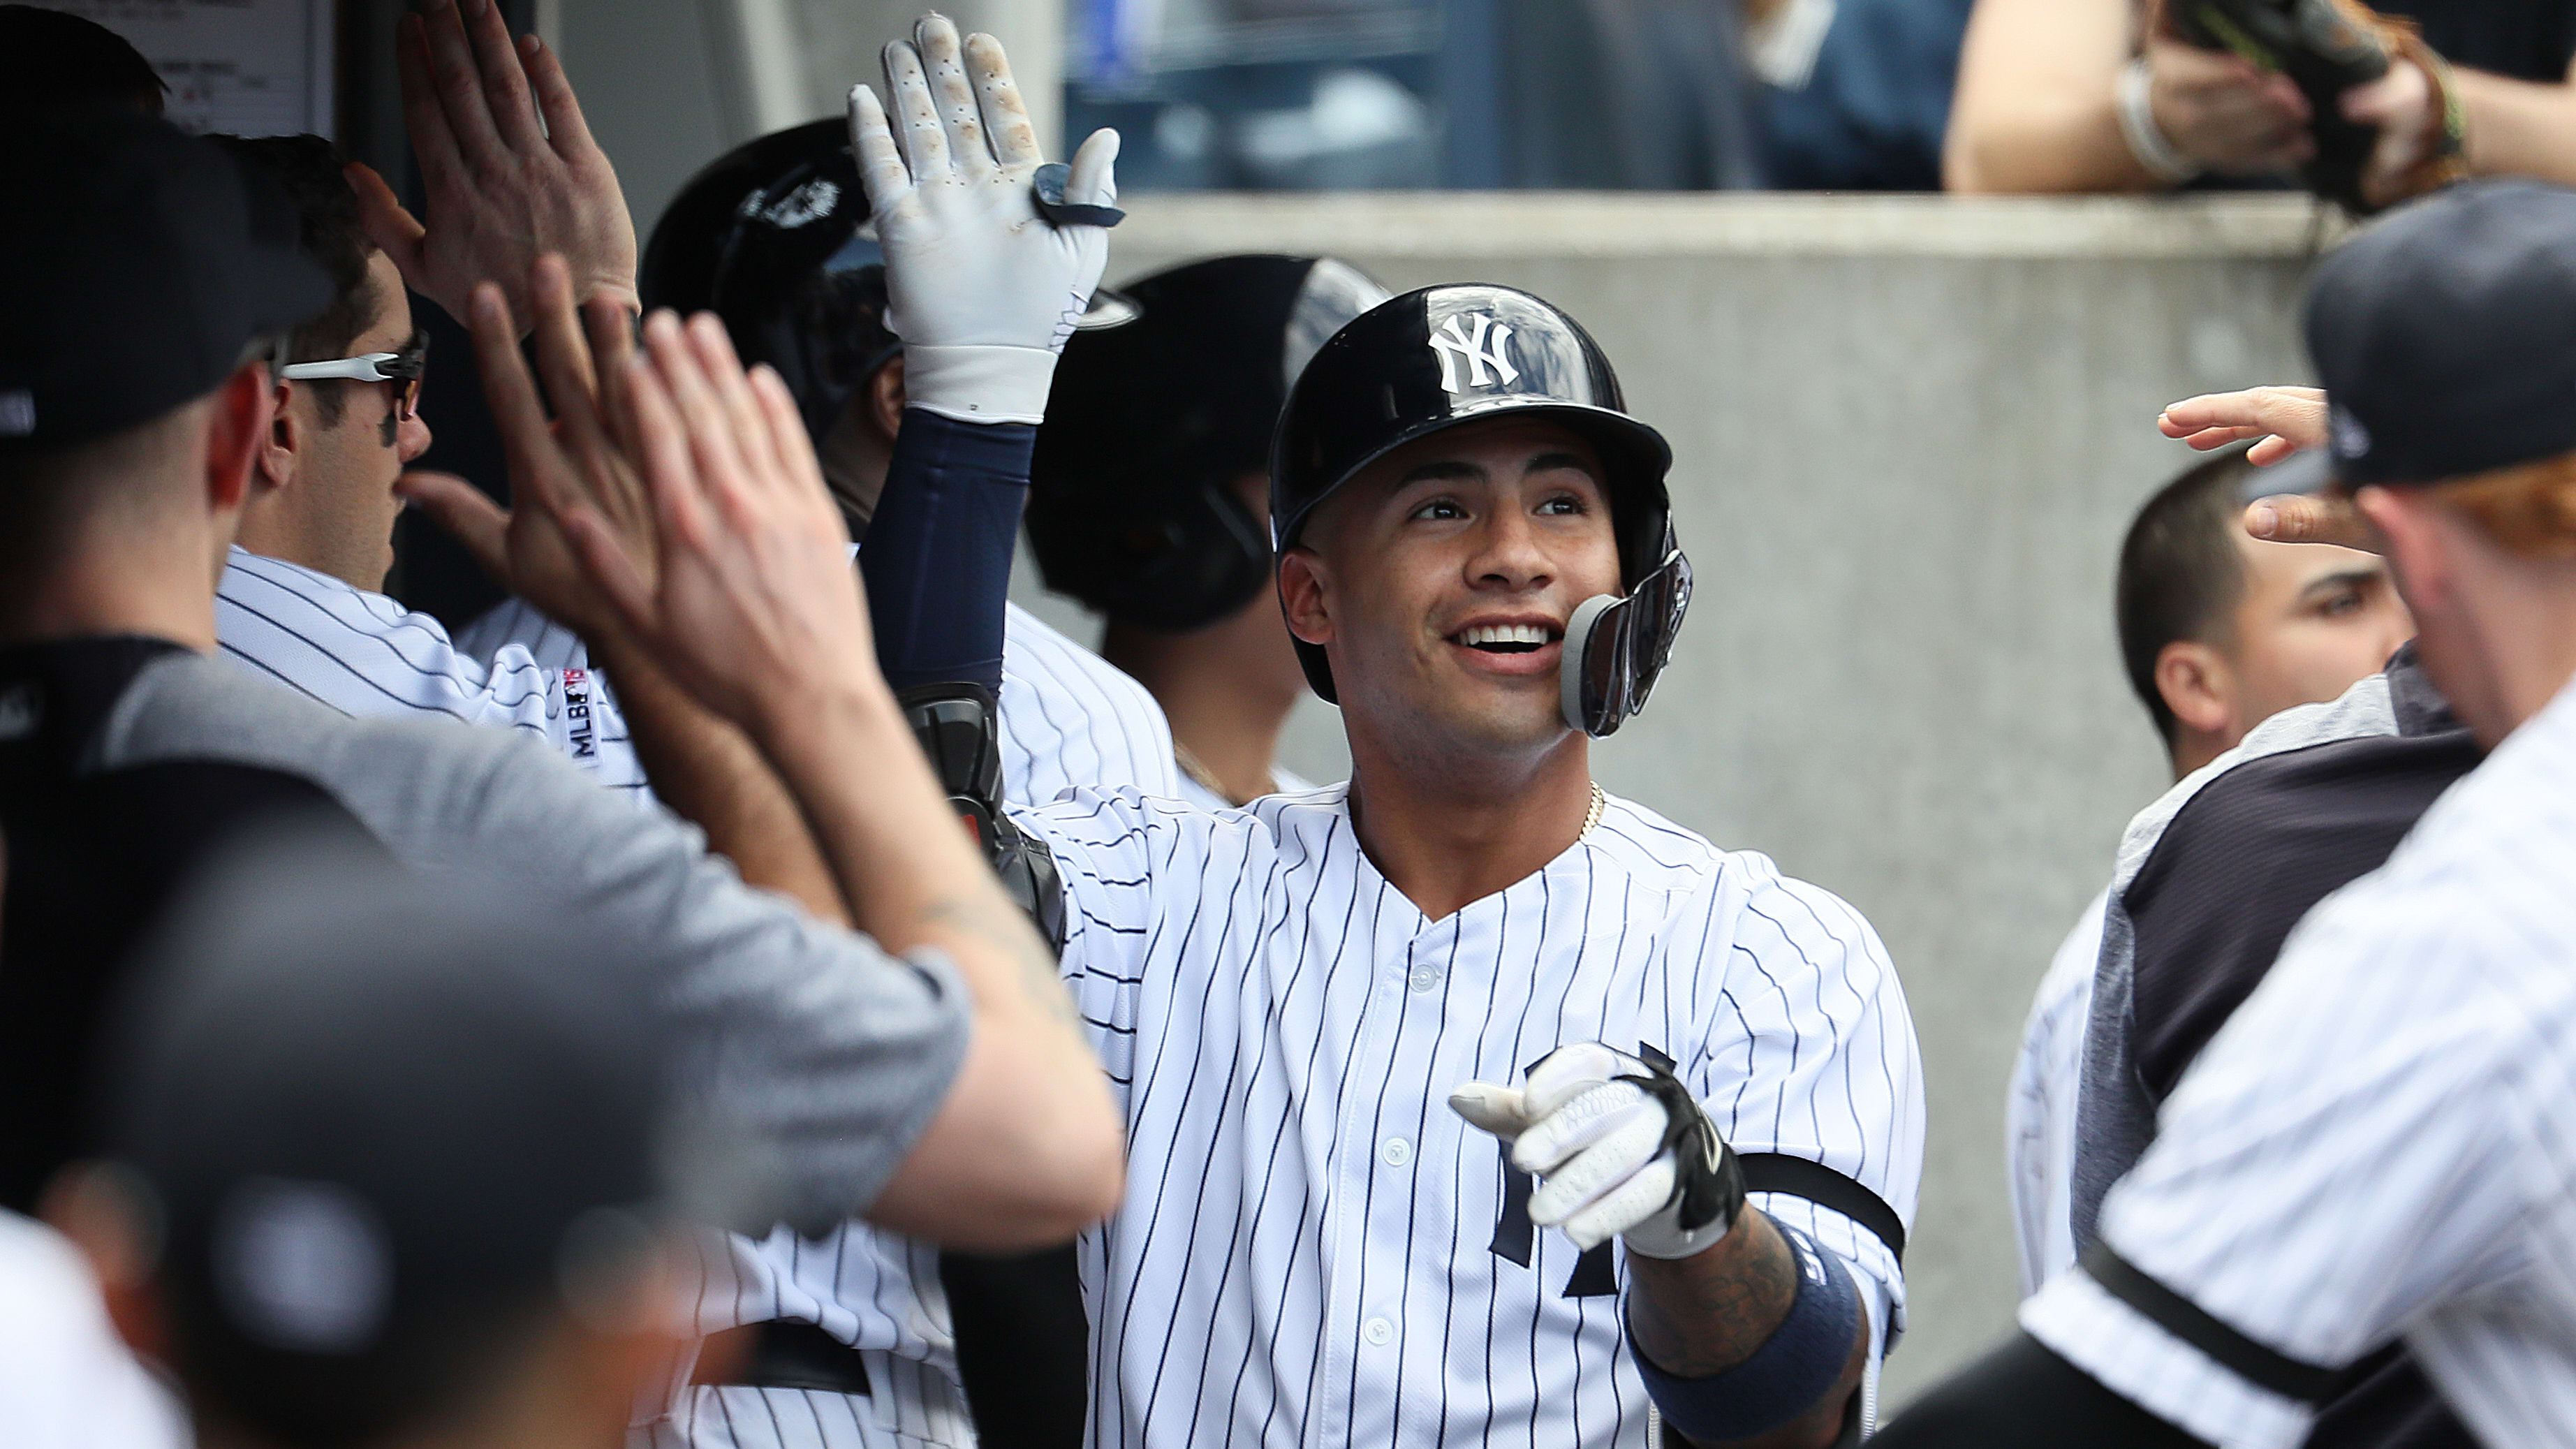 NEW YORK, NEW YORK - MAY 15:  Gleyber Torres #25 of the New York Yankees celebrates a fourth inning home run against the Baltimore Orioles during their game at Yankee Stadium on May 15, 2019 in New York City. (Photo by Al Bello/Getty Images)